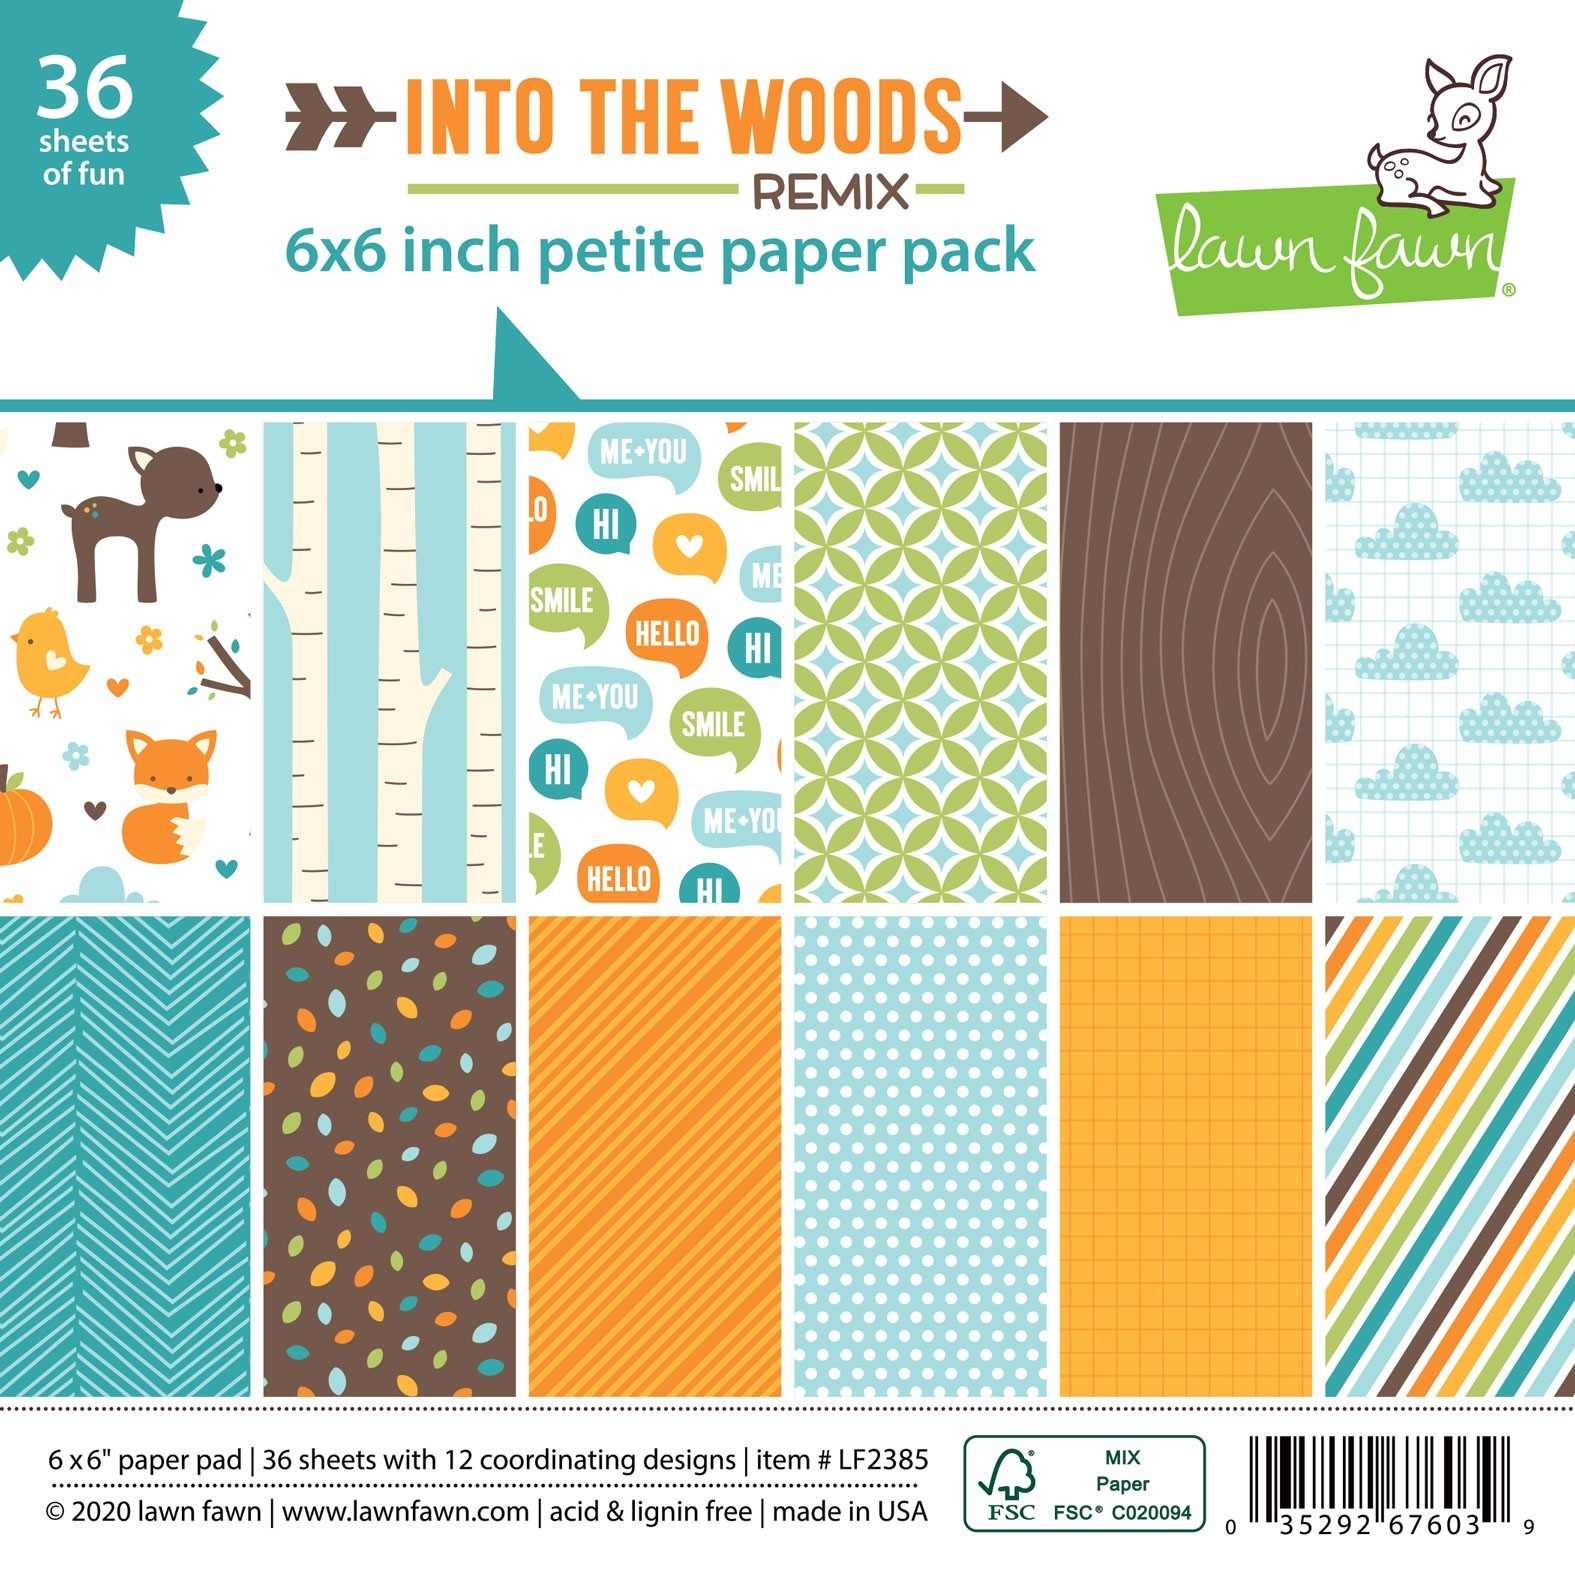 Lawn Fawn's Into the Woods Paper Pad